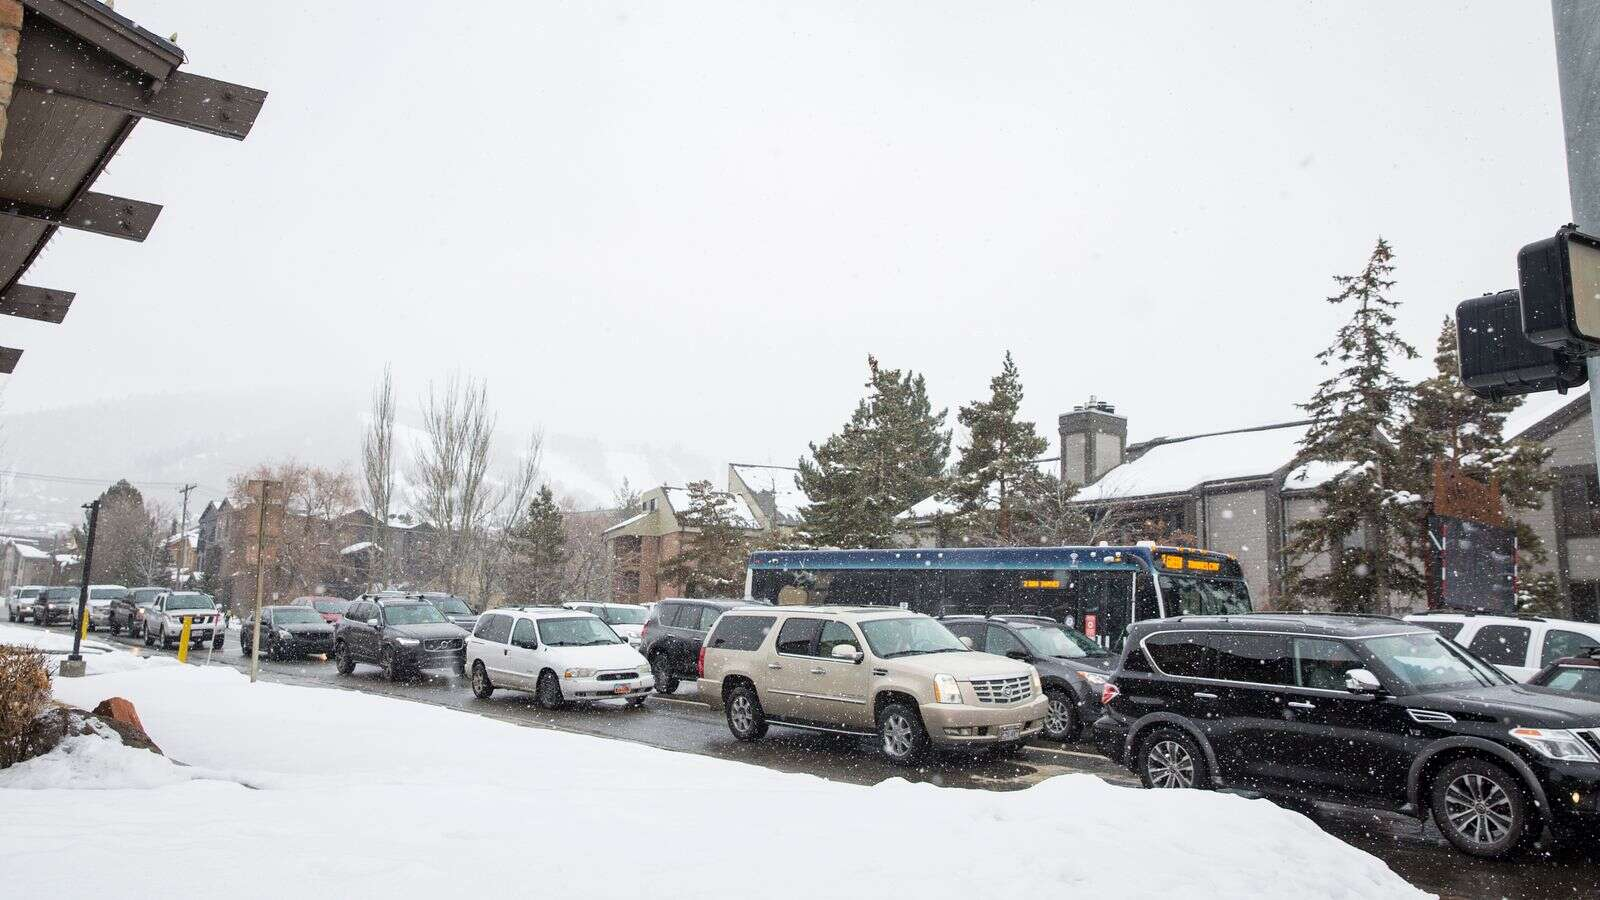 Park City traffic remains heavy, but relief expected in a matter of days